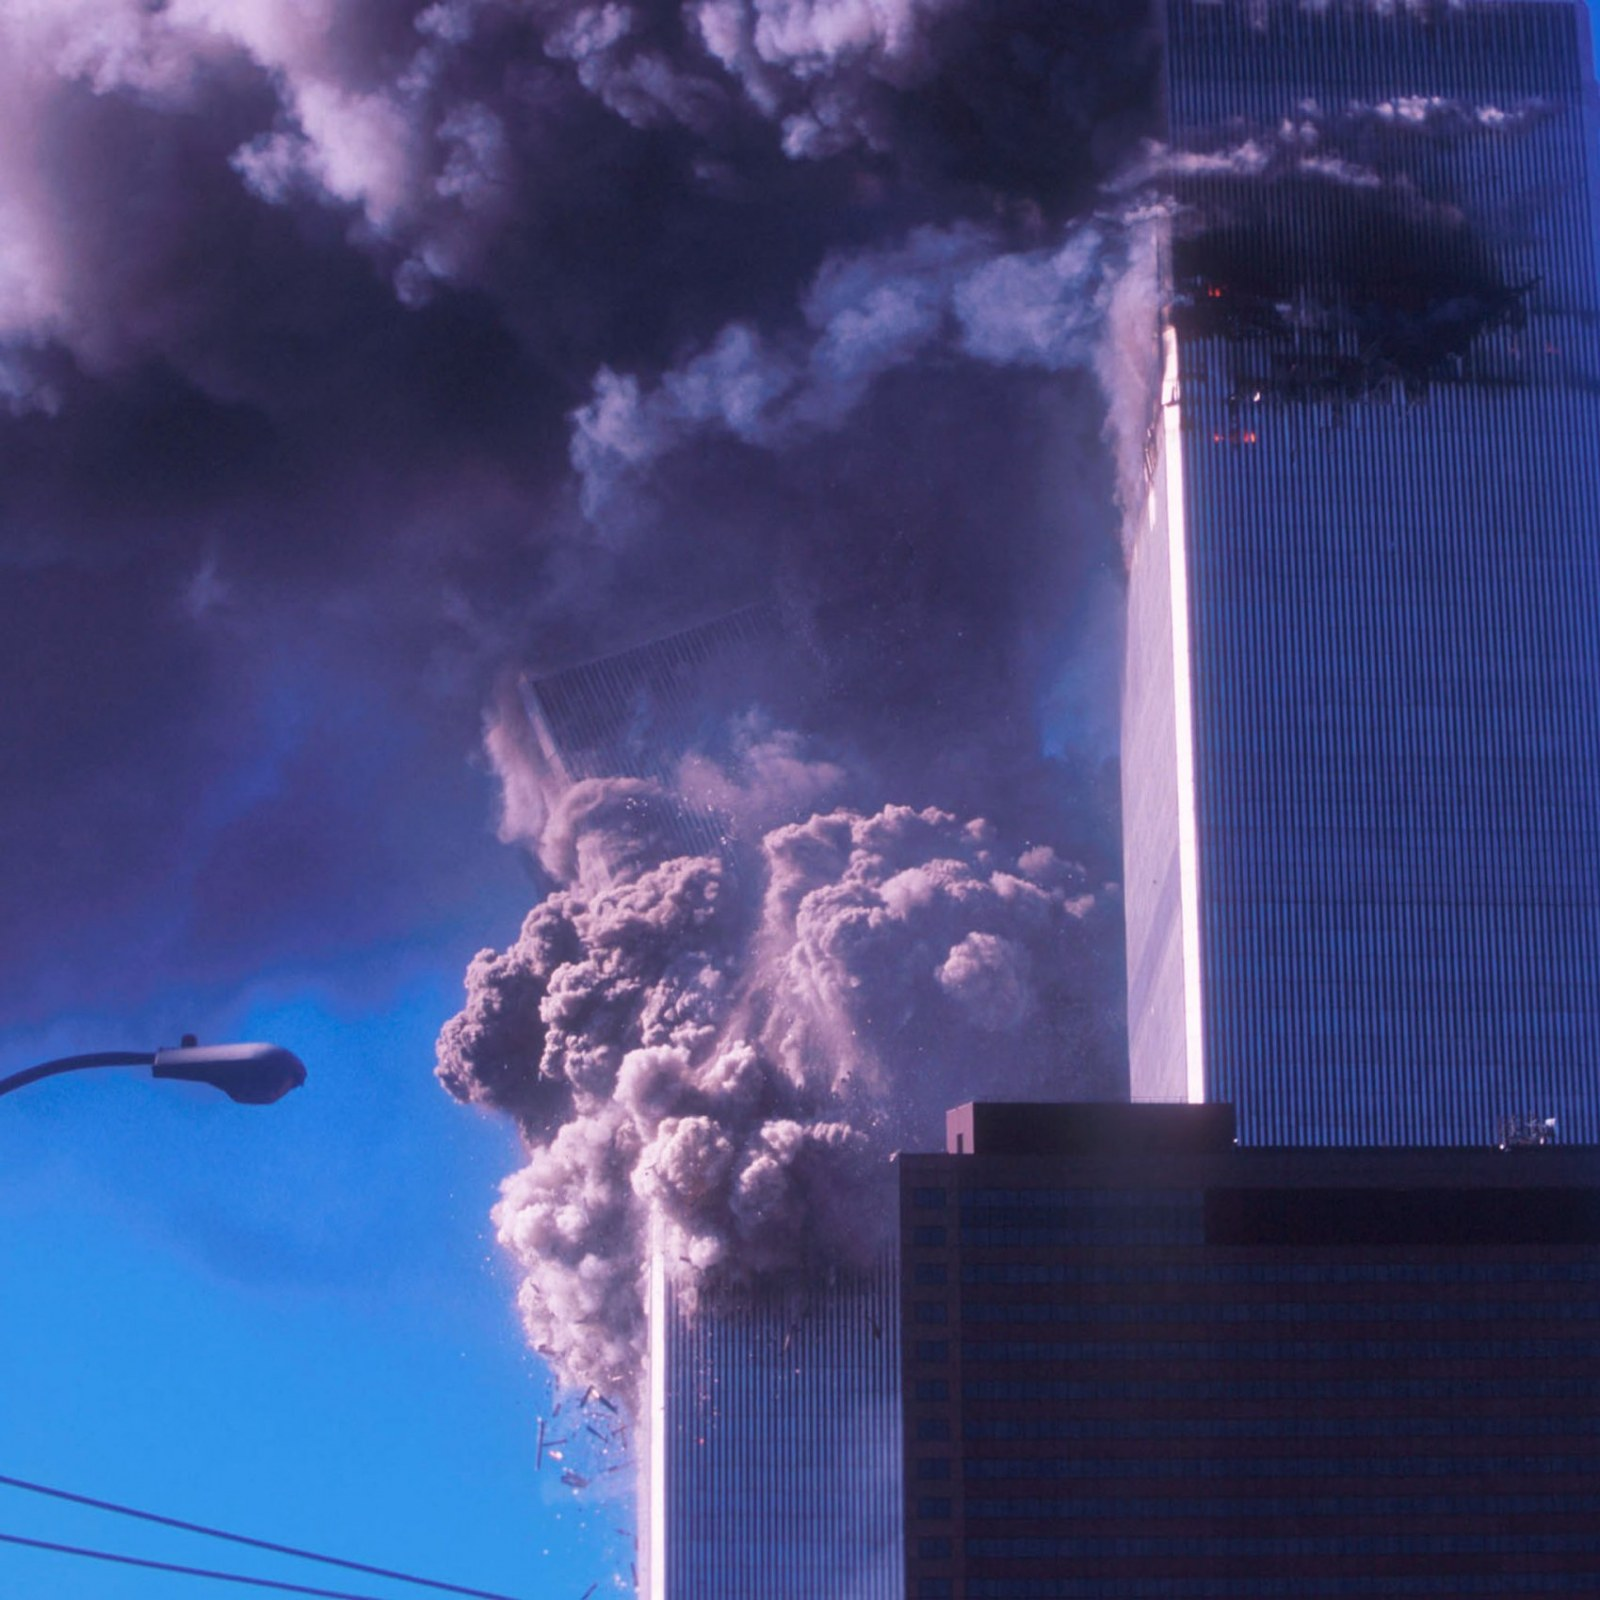 CIA and Saudi Arabia Conspired to Keep 9/11 Details Secret, New Book Says